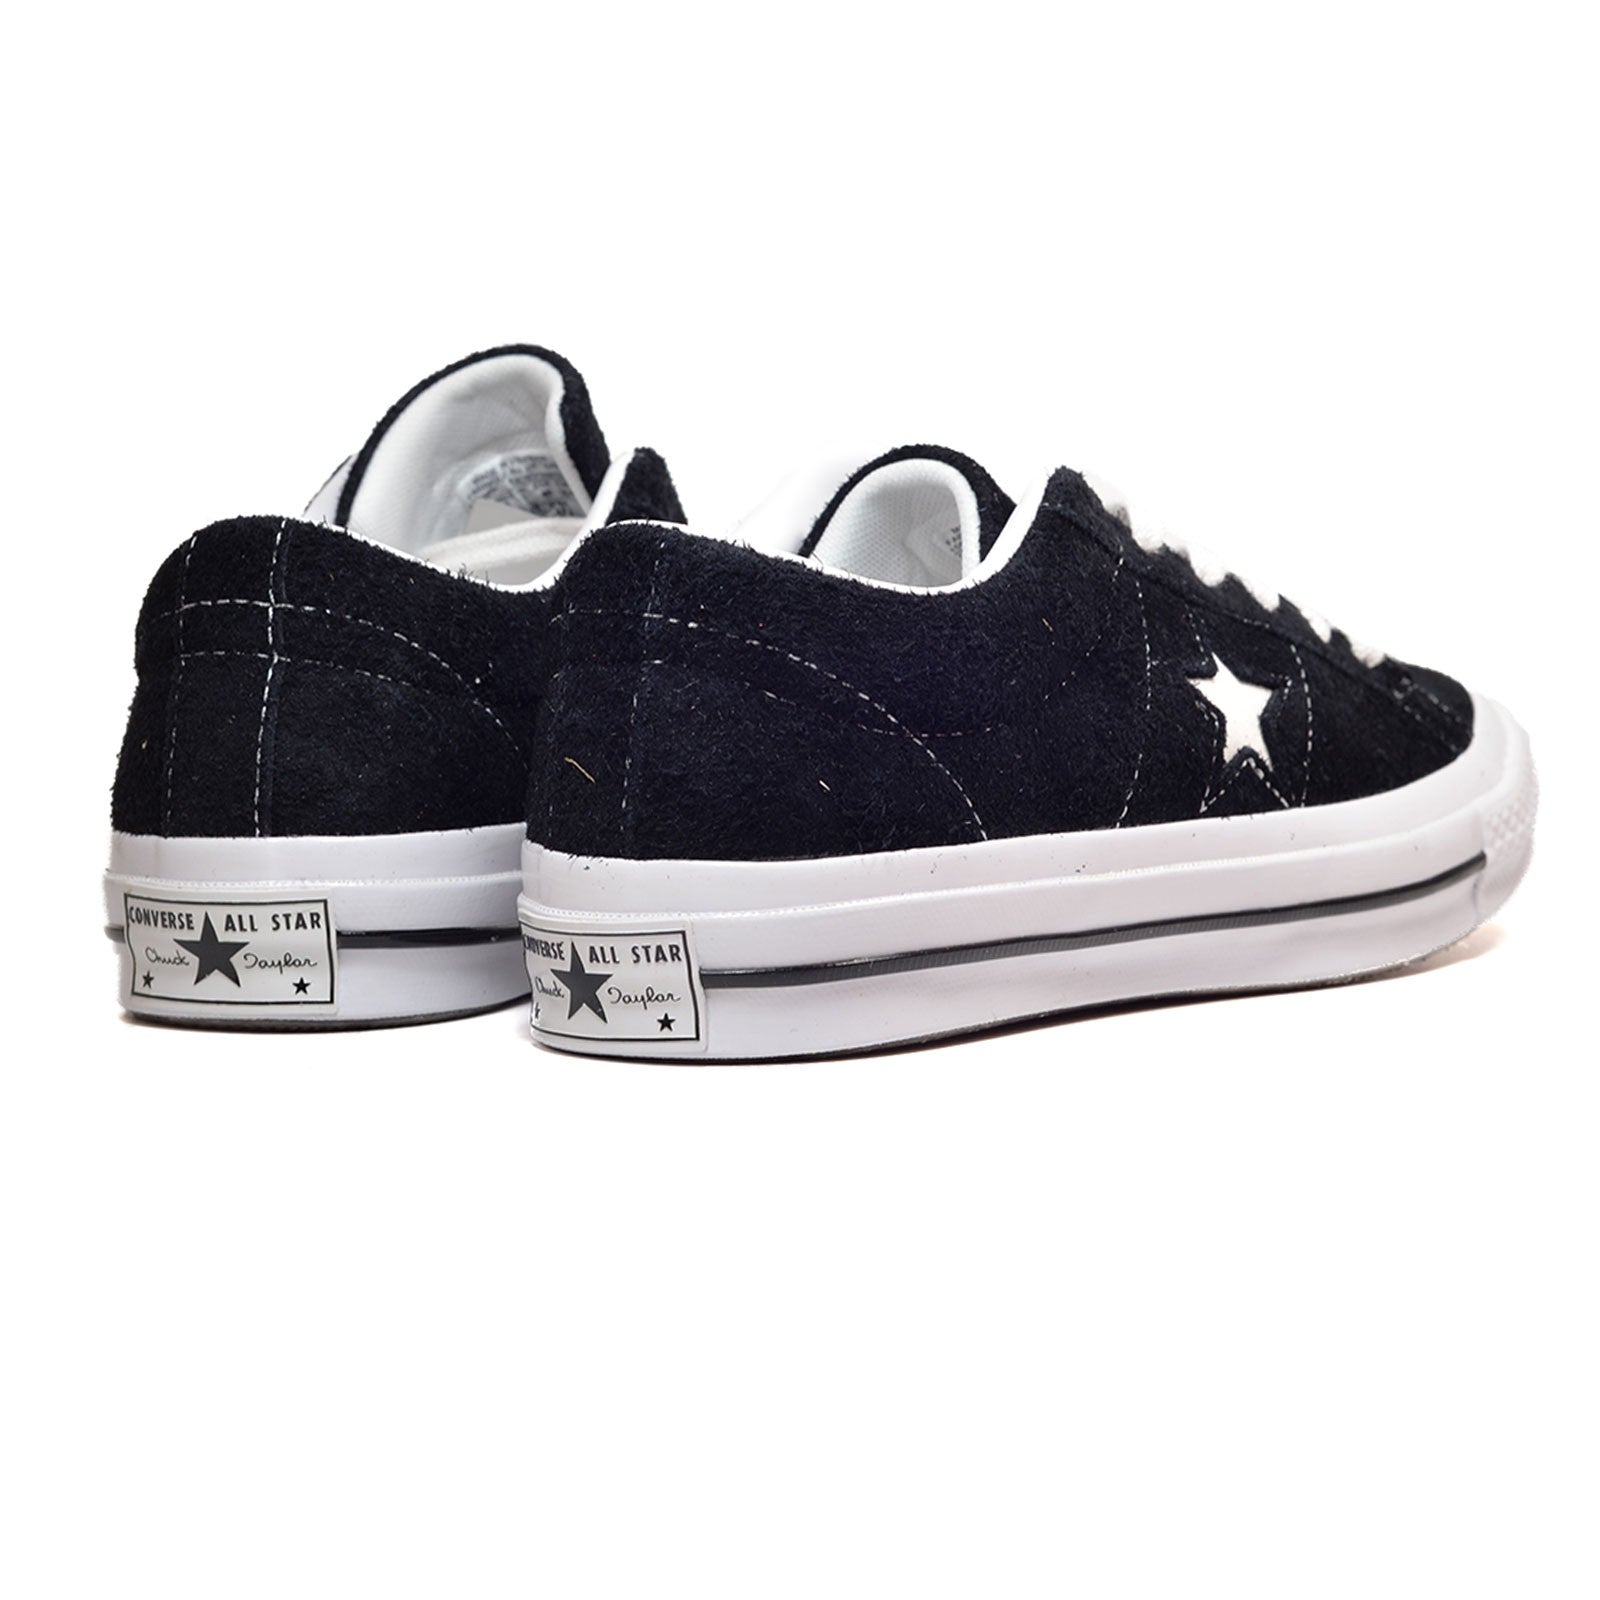 206a450f converse one star prenium suede sneaker — nous